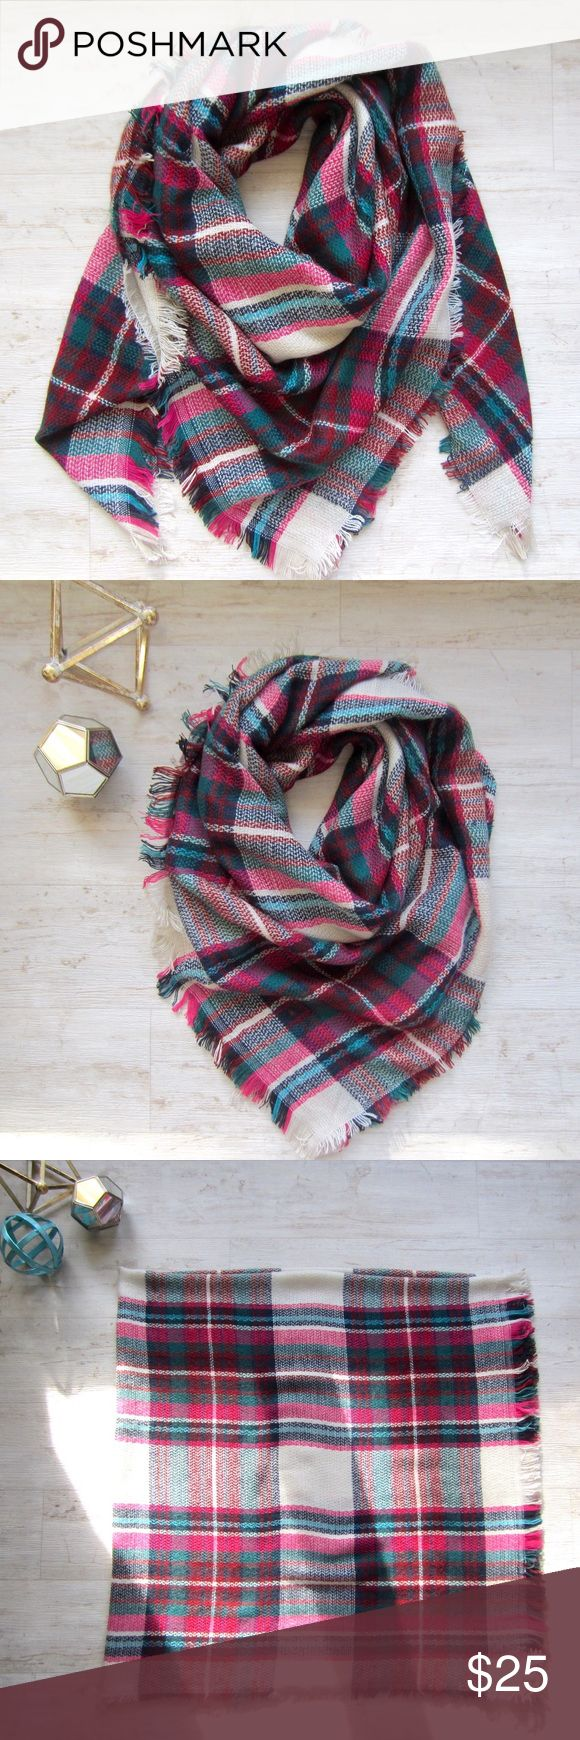 """Pink Tartan Blanket Scarf Ladies, it's time to stock up on this season's must have blanket scarves! Bundle up in this cozy fuchsia pink, green, red & tan plaid scarf. 100% acrylic. 57"""" x 57"""" square. Get yours now before they are gone! 🎀  P.S. Blanket scarves make great Christmas gifts. 😉🌲🎁  Note, I am unable to accept offers on boutique items. Boutique Accessories Scarves & Wraps"""